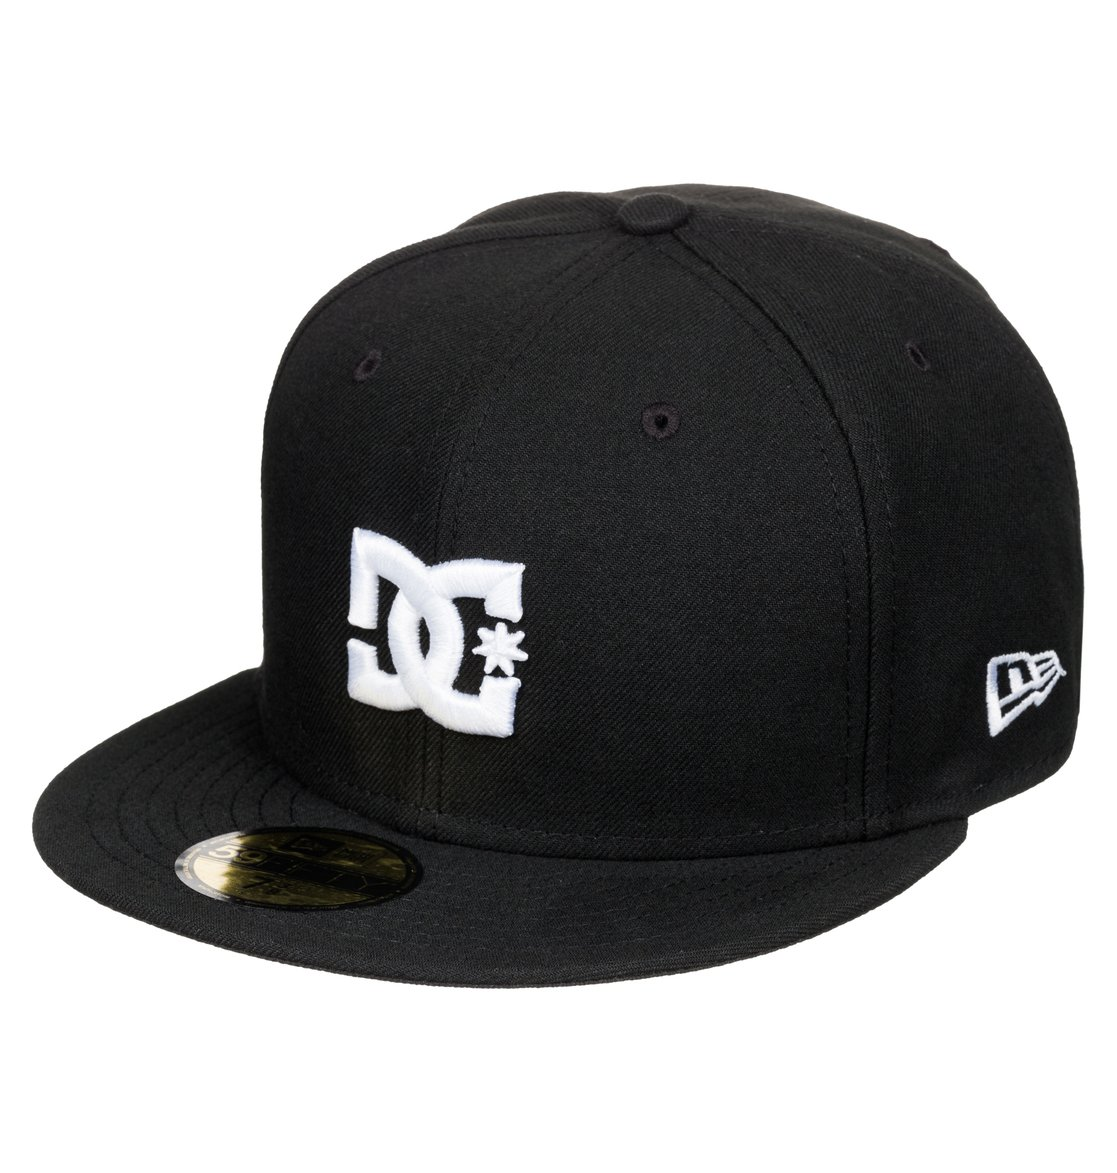 Find great deals on eBay for DC Hats in Men's Hats. Shop with confidence.